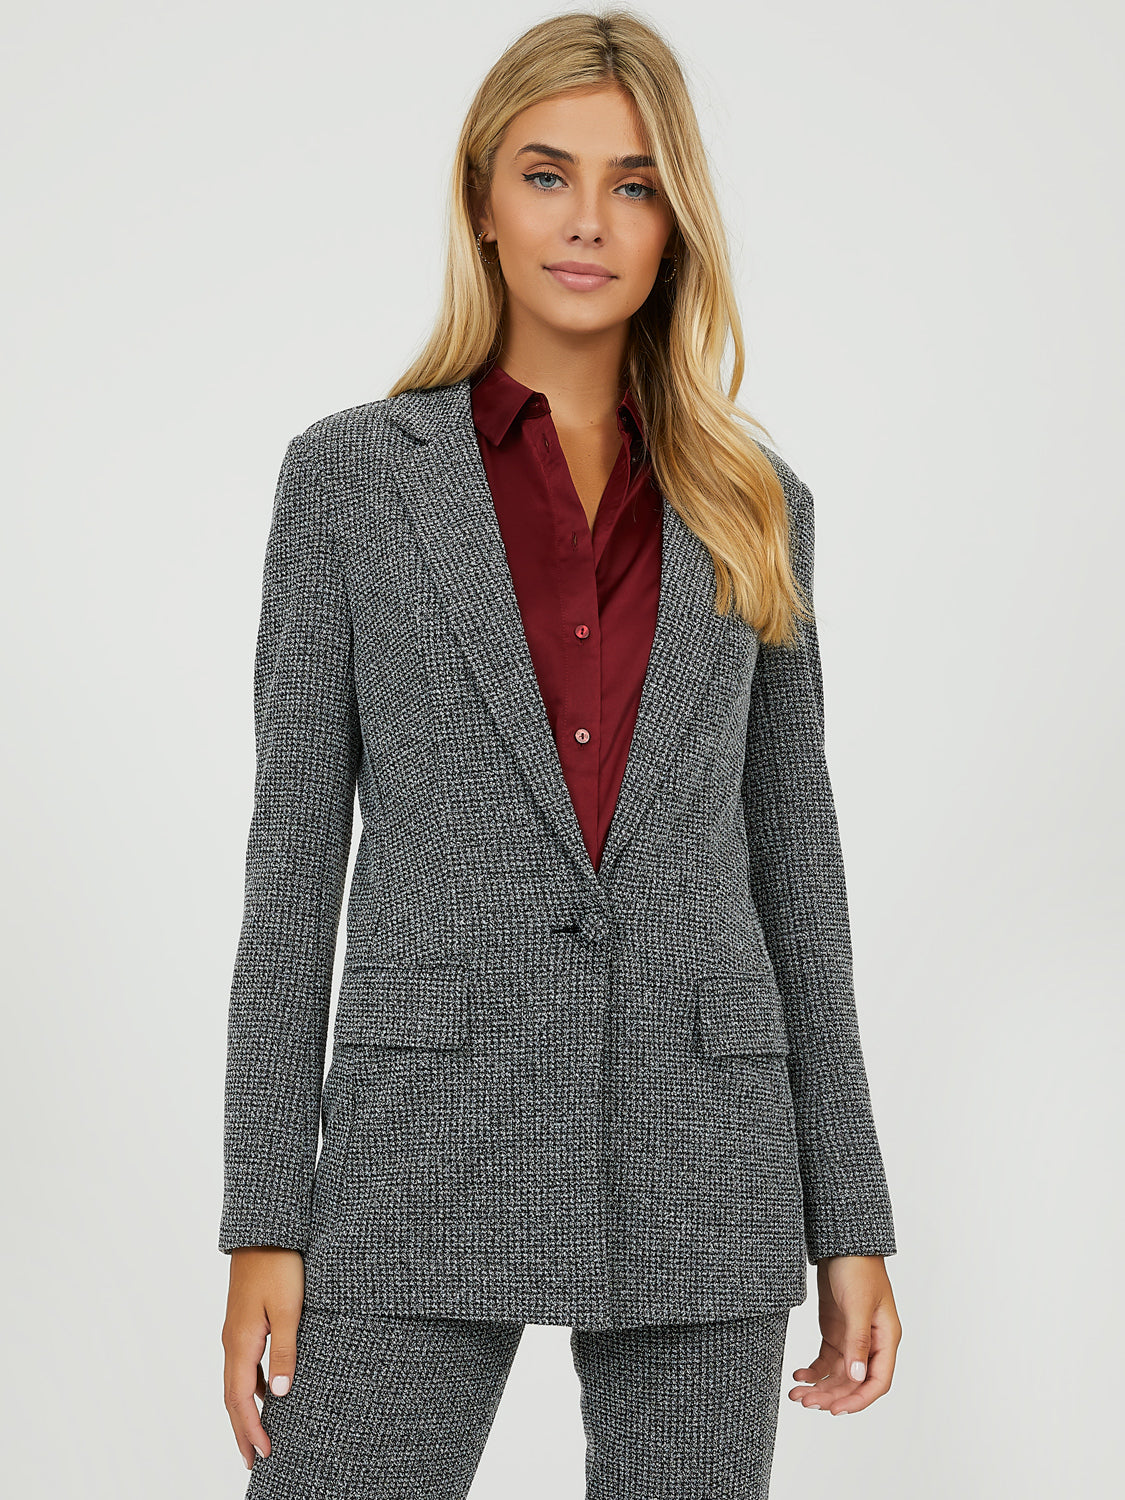 Knitted Houndstooth Blazer